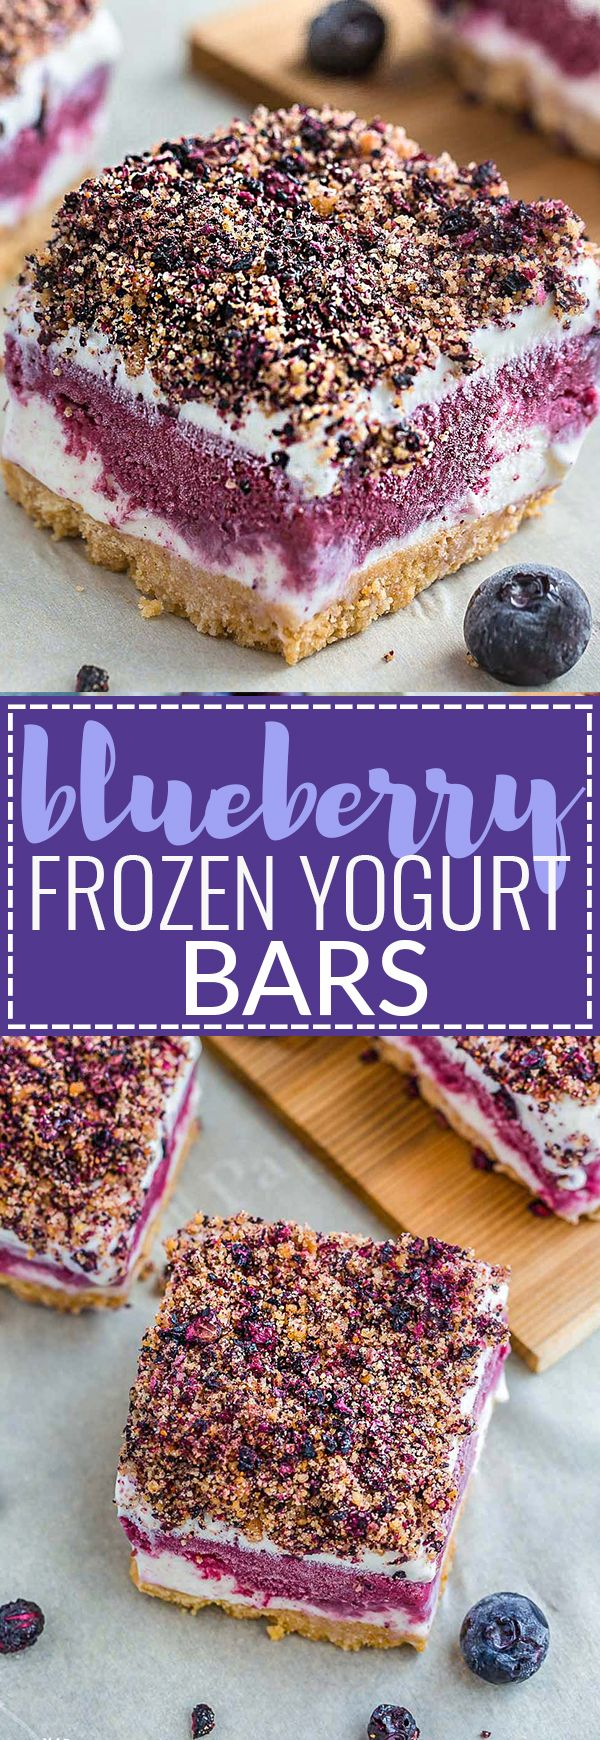 Blueberry Frozen Yogurt Bars are the perfect cool treat on a hot summer day. They're a healthier blueberry version of the classic Strawberry Shortcake Good Humor Ice Cream popsicles. Best of all, they're, so easy to make with delicious layers of vanilla and blueberry frozen yogurt, a crumbled shortbread topping & no-bake cookie crust.